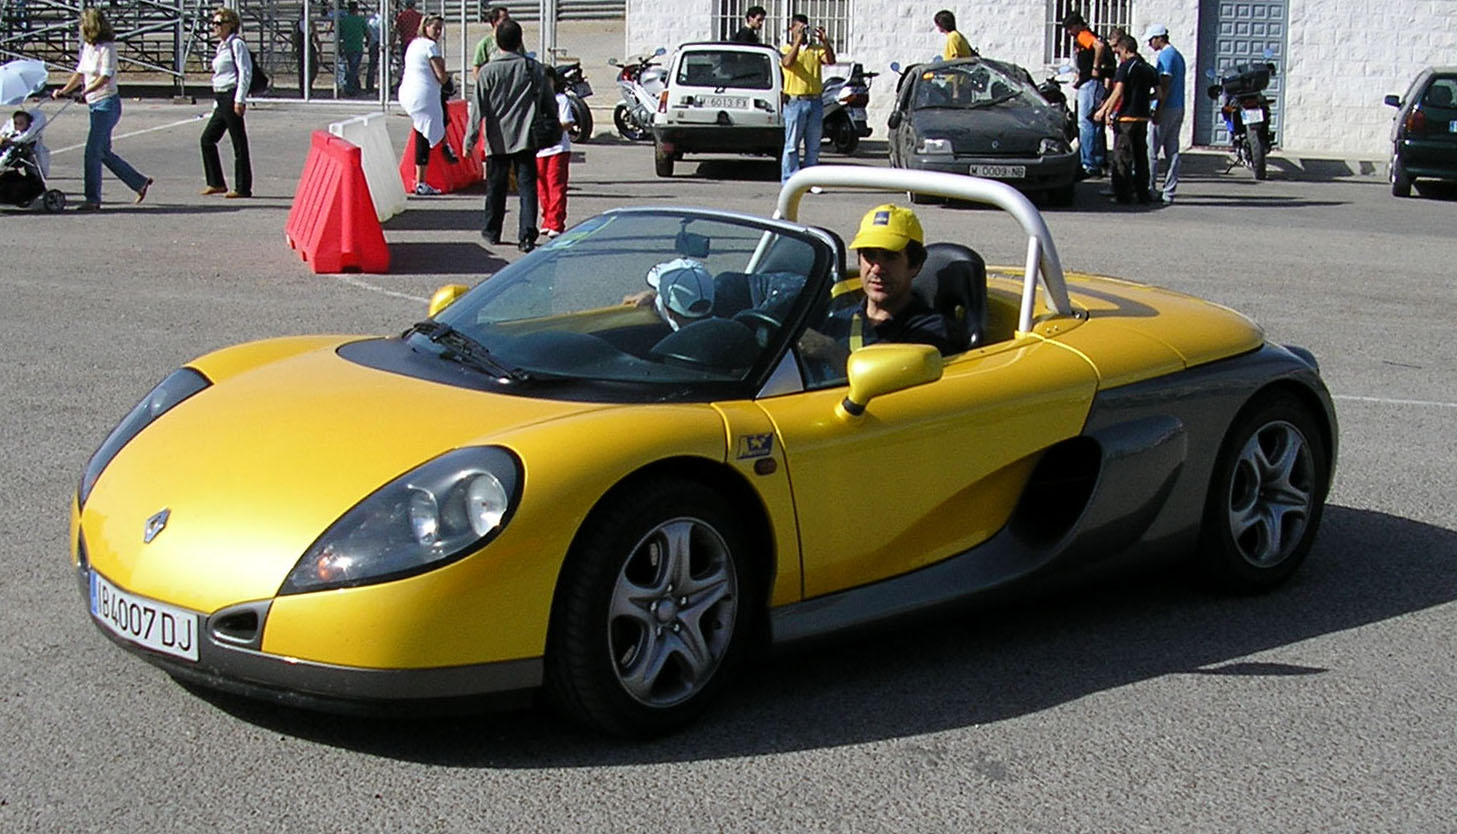 file renault spider jarama 2006 wikimedia commons. Black Bedroom Furniture Sets. Home Design Ideas